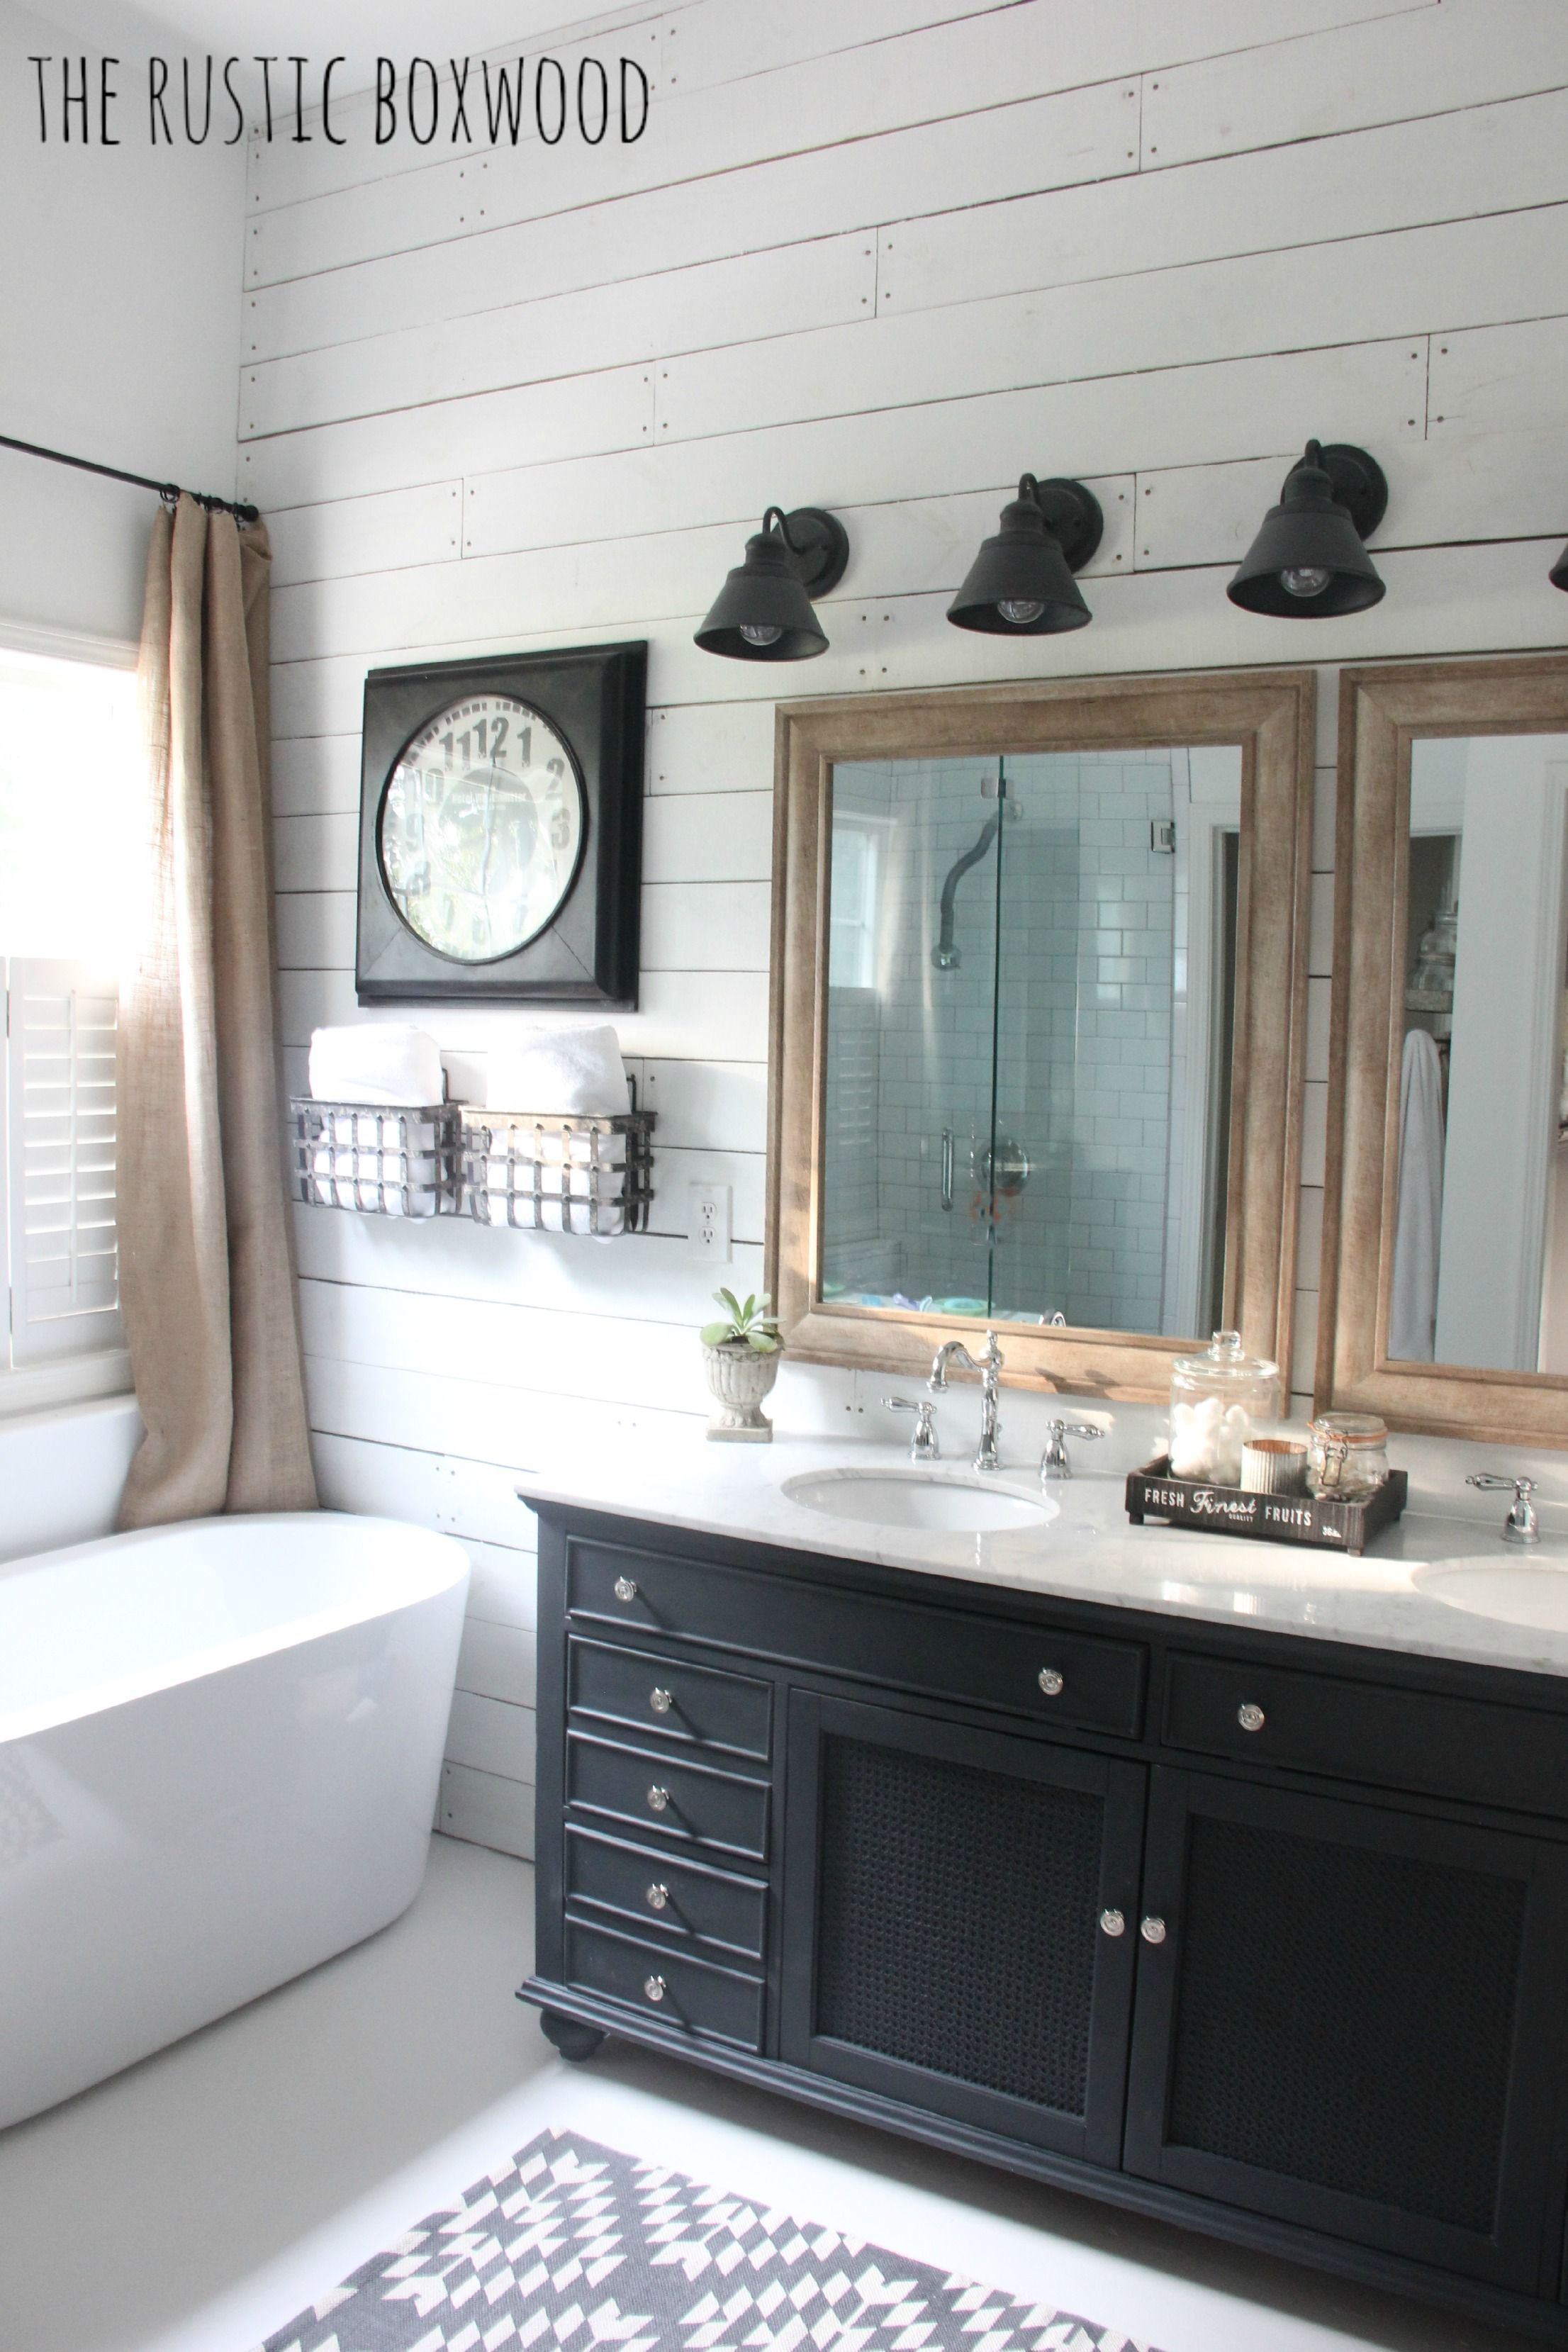 Painted tiles in bathroom - Farmhouse Decor Ideas For The Bathroom